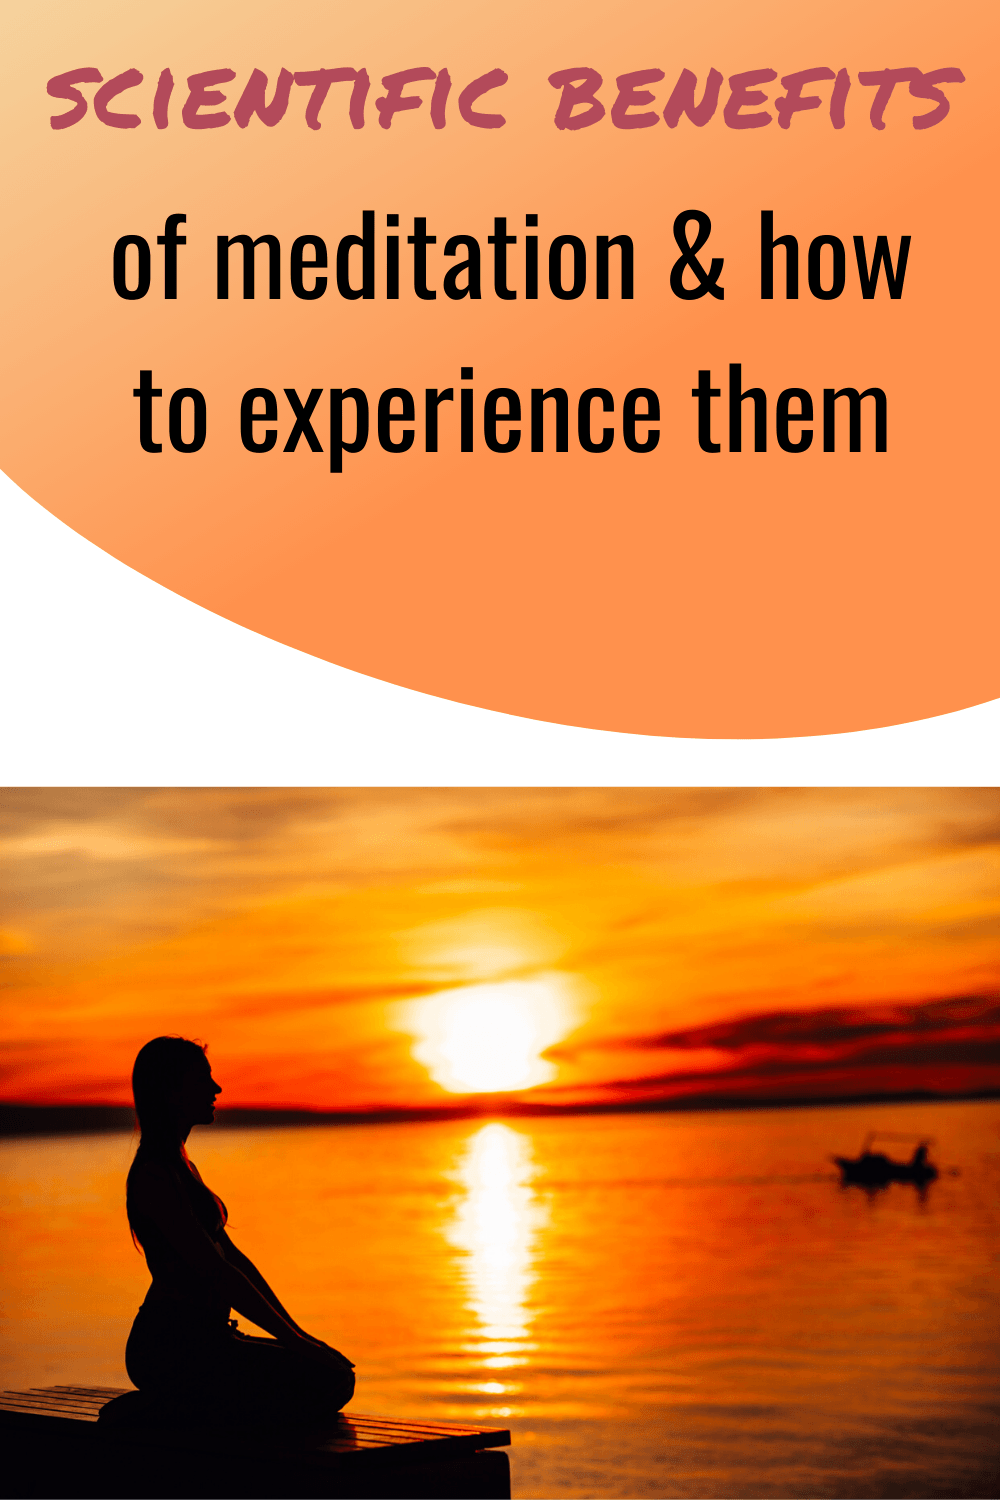 meditation scientific benefits experience them